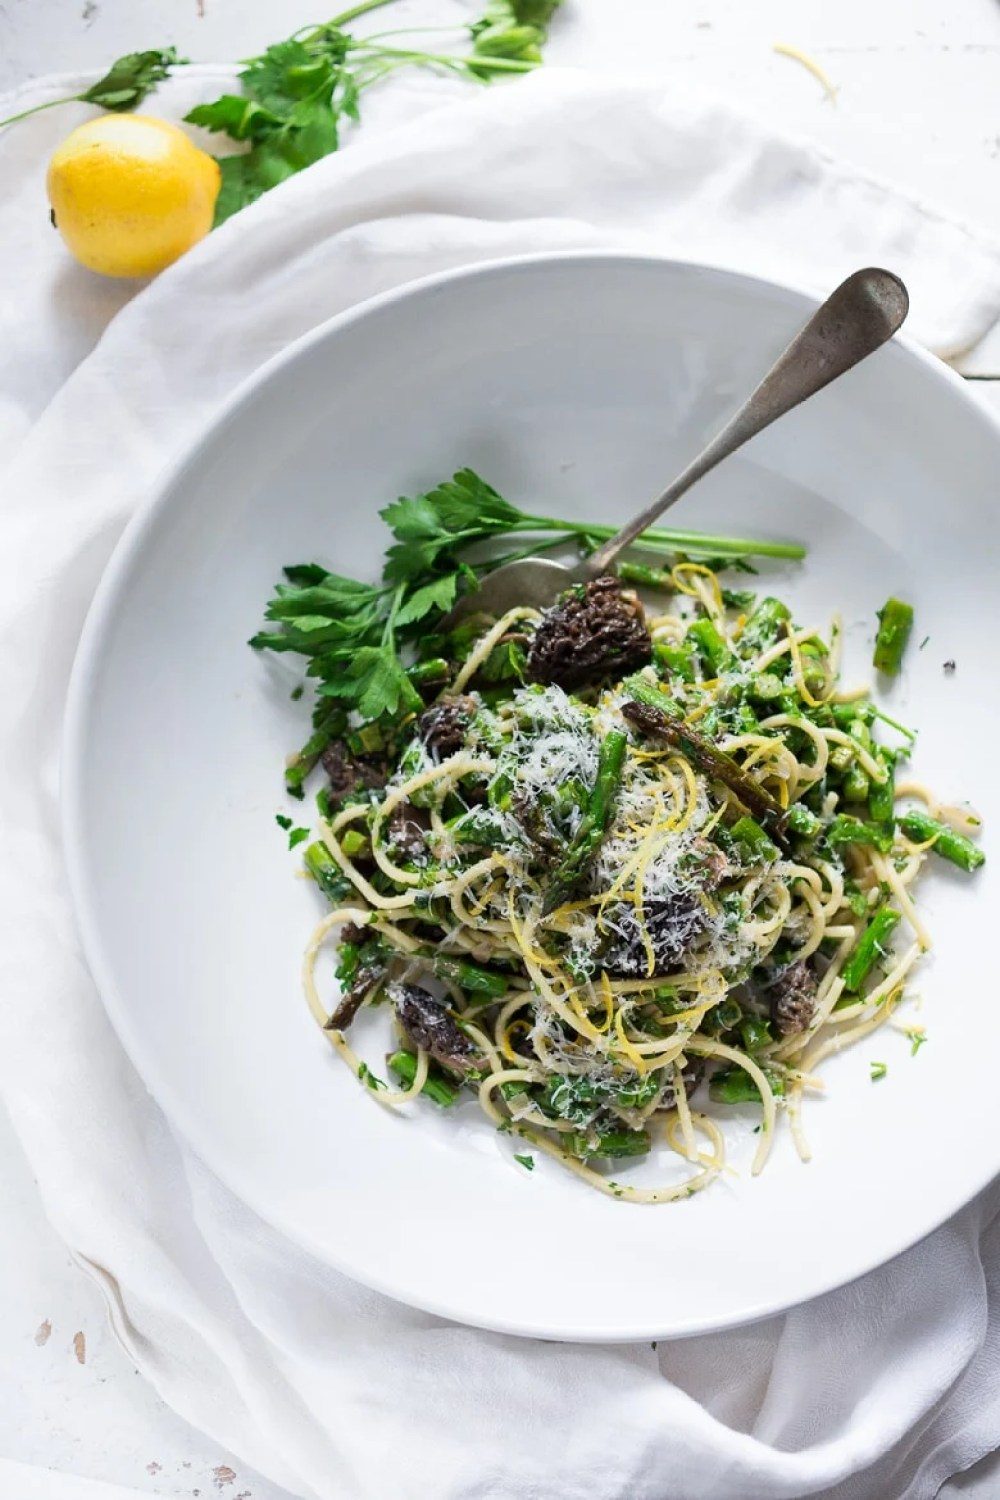 Spring Pasta Salad with Asparagus, Morels and Lemon Parsley Dressing. Zesty and flavorful, make in 30 minutes! | www.feastingathome.com